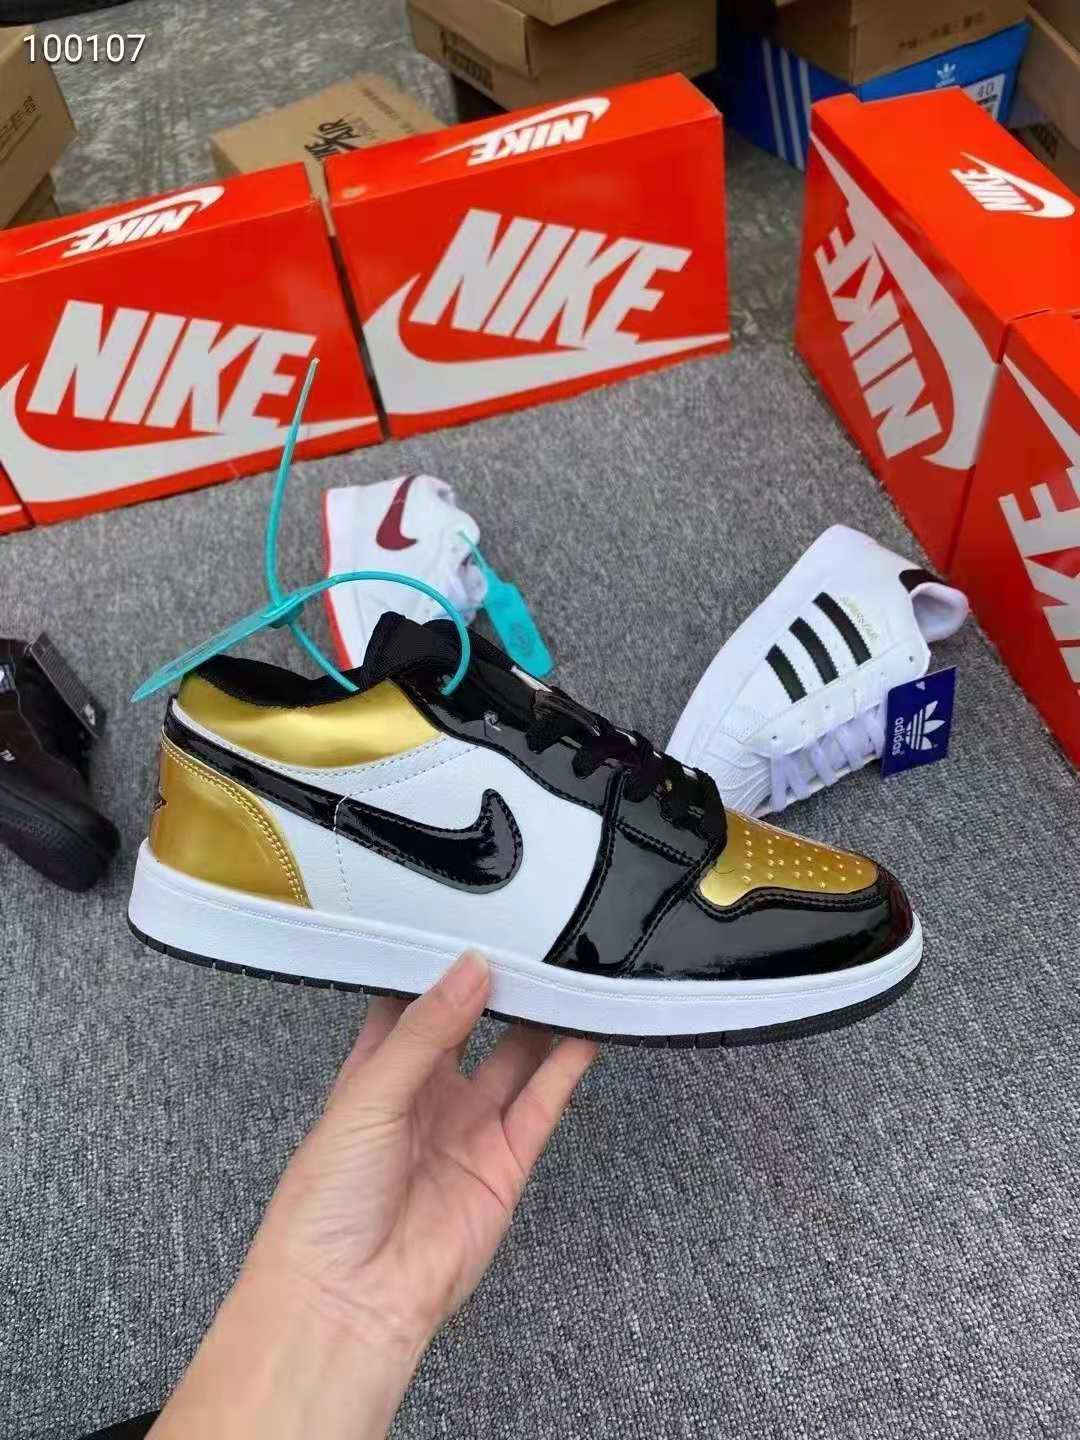 2021 new hot-selling children's shoes sneaker High quality  comfortable and durable Wholesale stock shoes